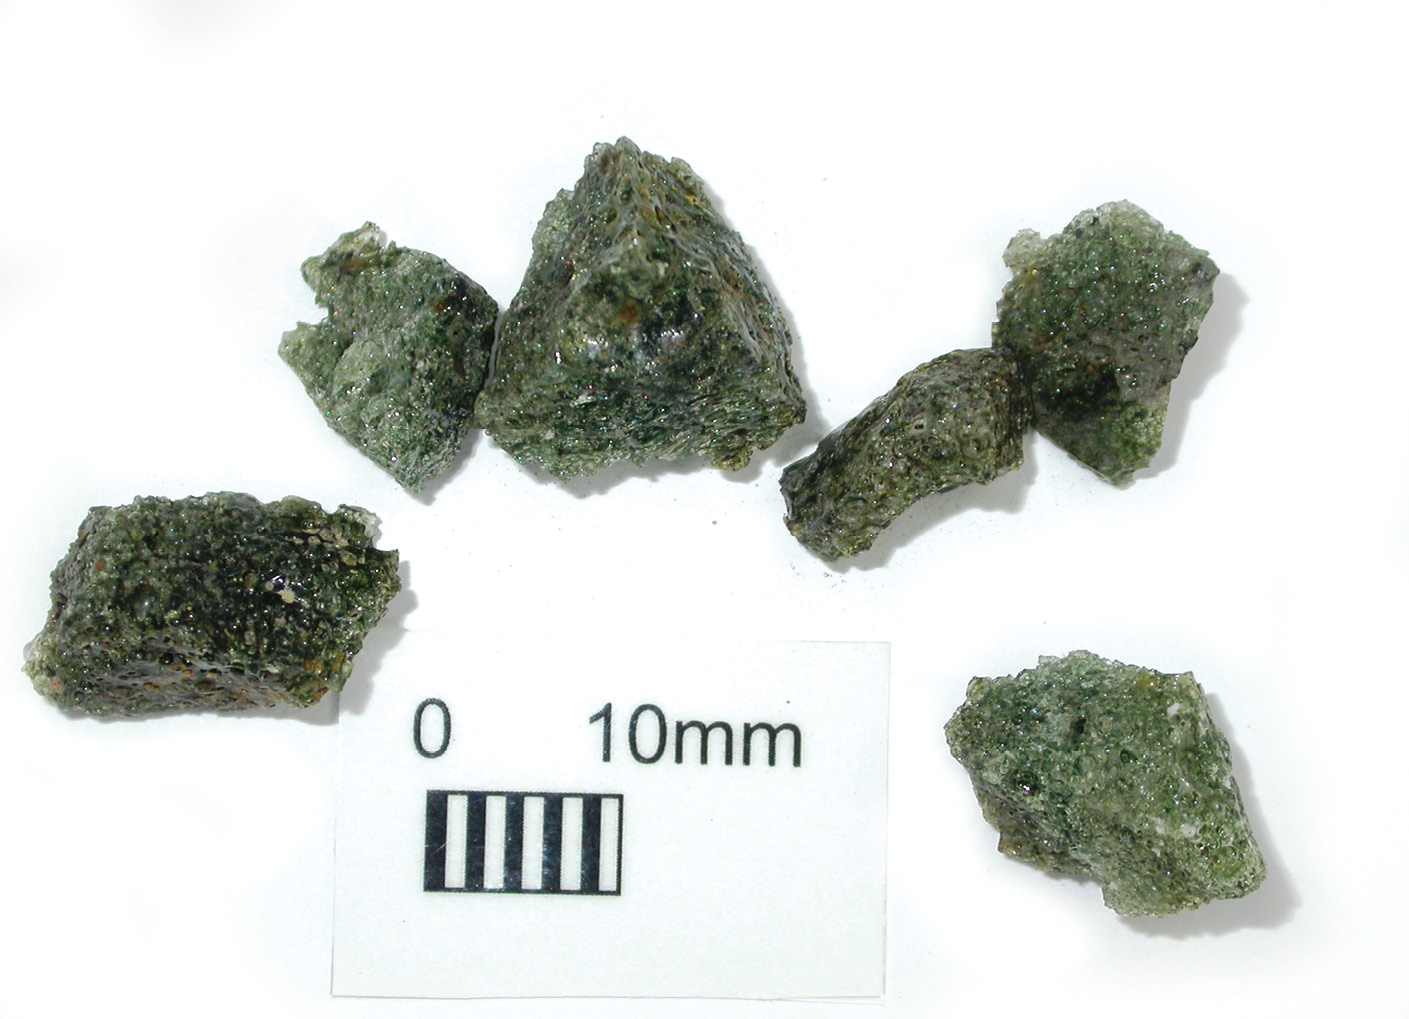 LEFT The most-common defects in early glass were bubbles and 'stones' usually in the form of sand particles that had not melted fully or, as here, fragments of crucible or furnace roof that dropped into the molten glass during firing. This example, from a furnace site at Glasshouse Lane, Kirdford, West Sussex, had been pulled out of the molten glass by the glass-blower using tongs and thrown on a waste pile. ABOVE Various methods were used to drive bubbles out of the molten glass, including the introduction of organic materials (a potato was sometimes used) to create large gas bubbles that would sweep up the small ones (called 'seed') as they rose to the surface in a 'violent ebullition of the whole mass'. Reaching the surface, the bubbles often overflowed the rim of the crucible to produce 'frothy' glass waste, like these finds from Silkstone, South Yorkshire.